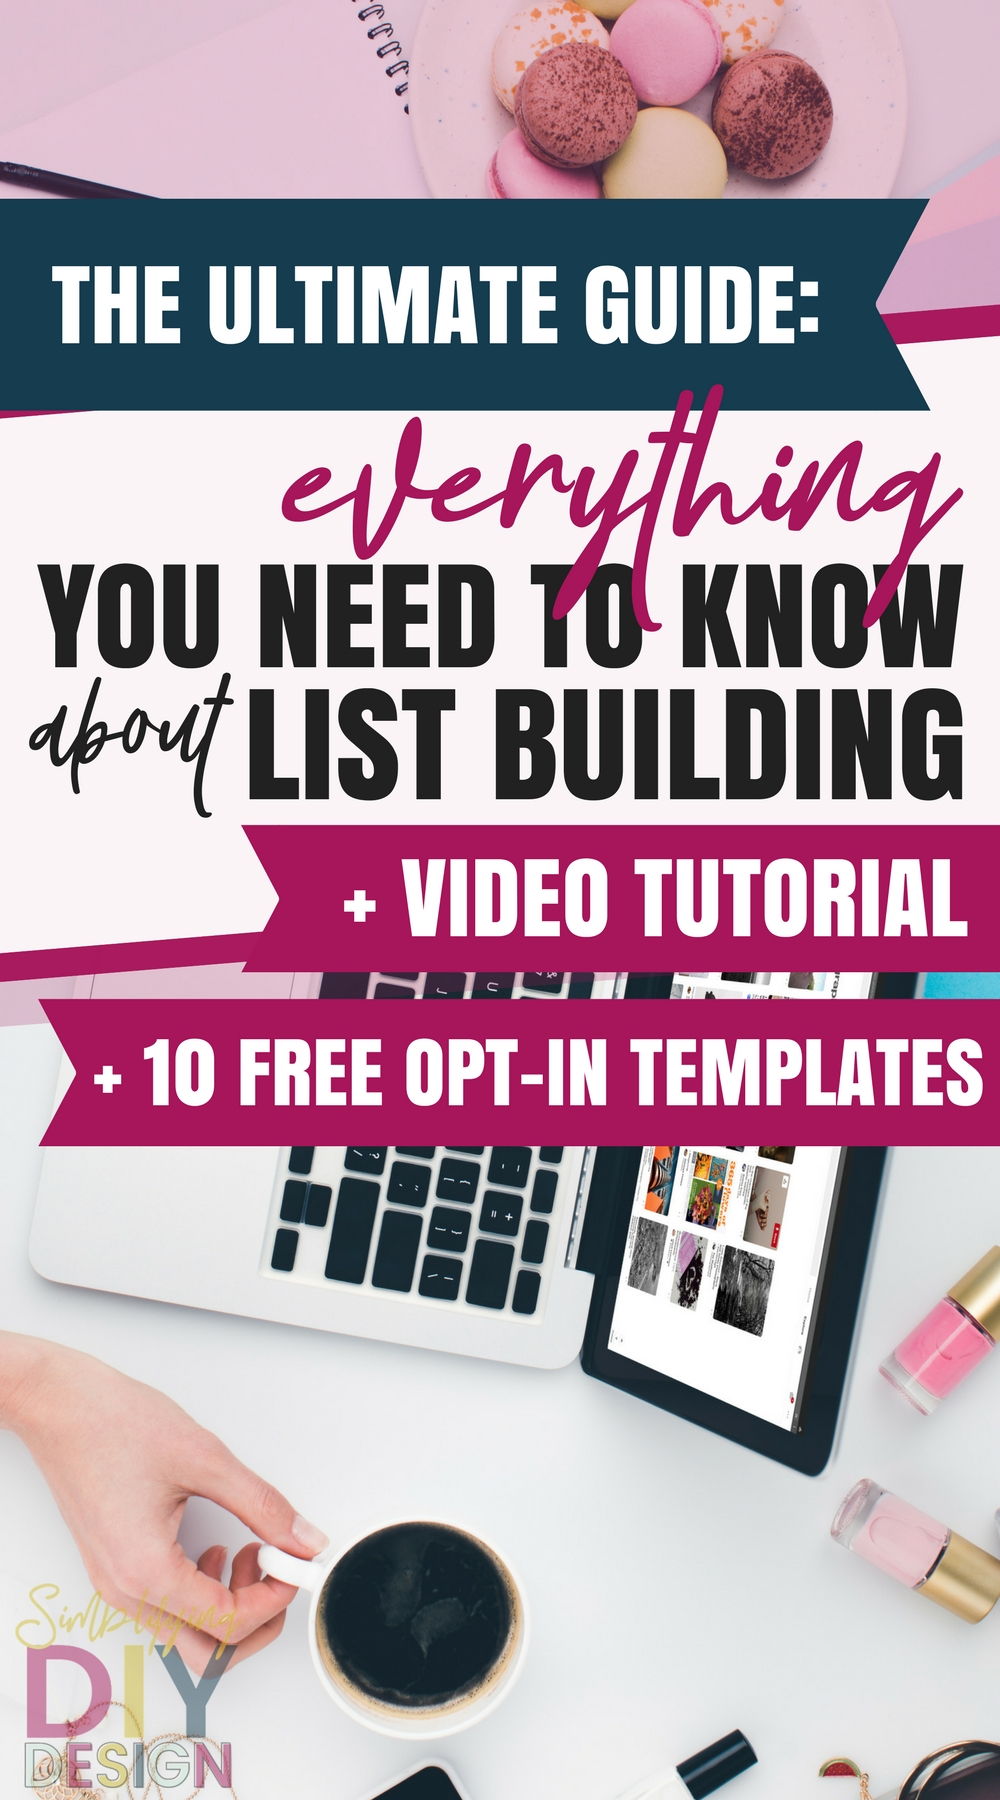 Computer desk top with title of image: The Ultimate Guide: Everything You Need To Know About List Building + Video Tutorial + 10 Free Opt-in Templates